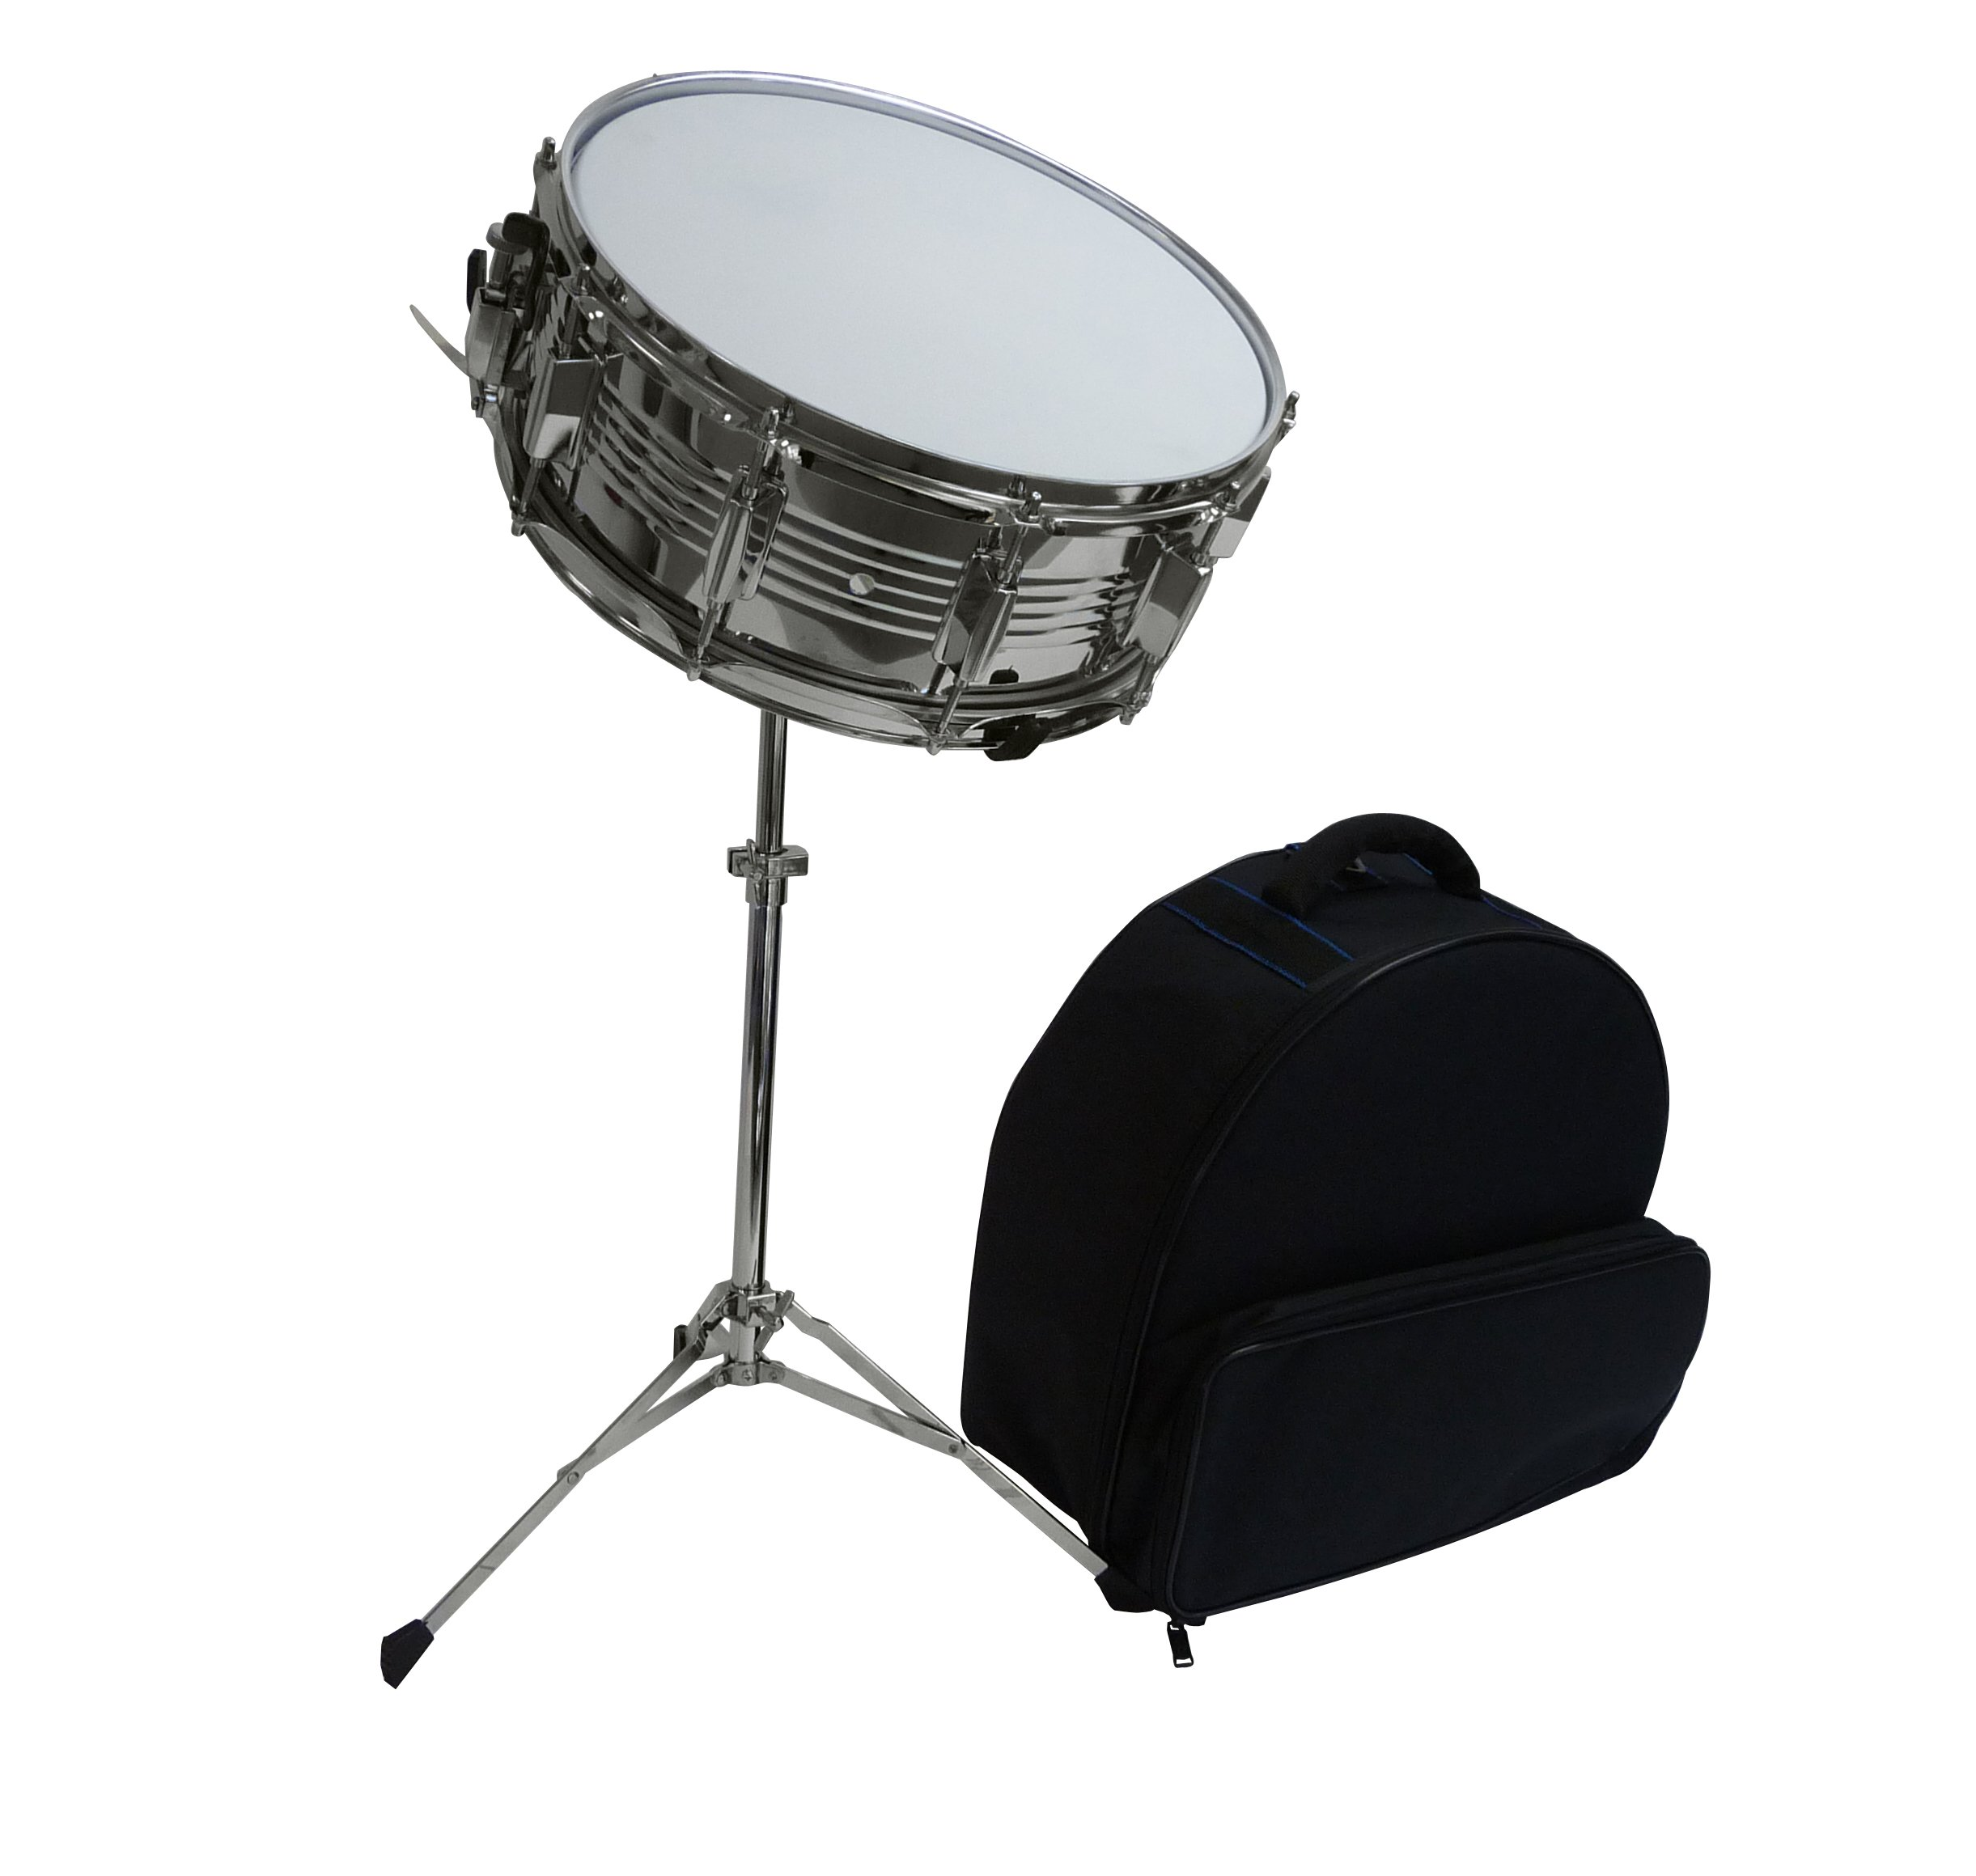 Suzuki Musical Instrument Corporation SDK-14 Snare Drum Kit with Pad, Sticks and Case